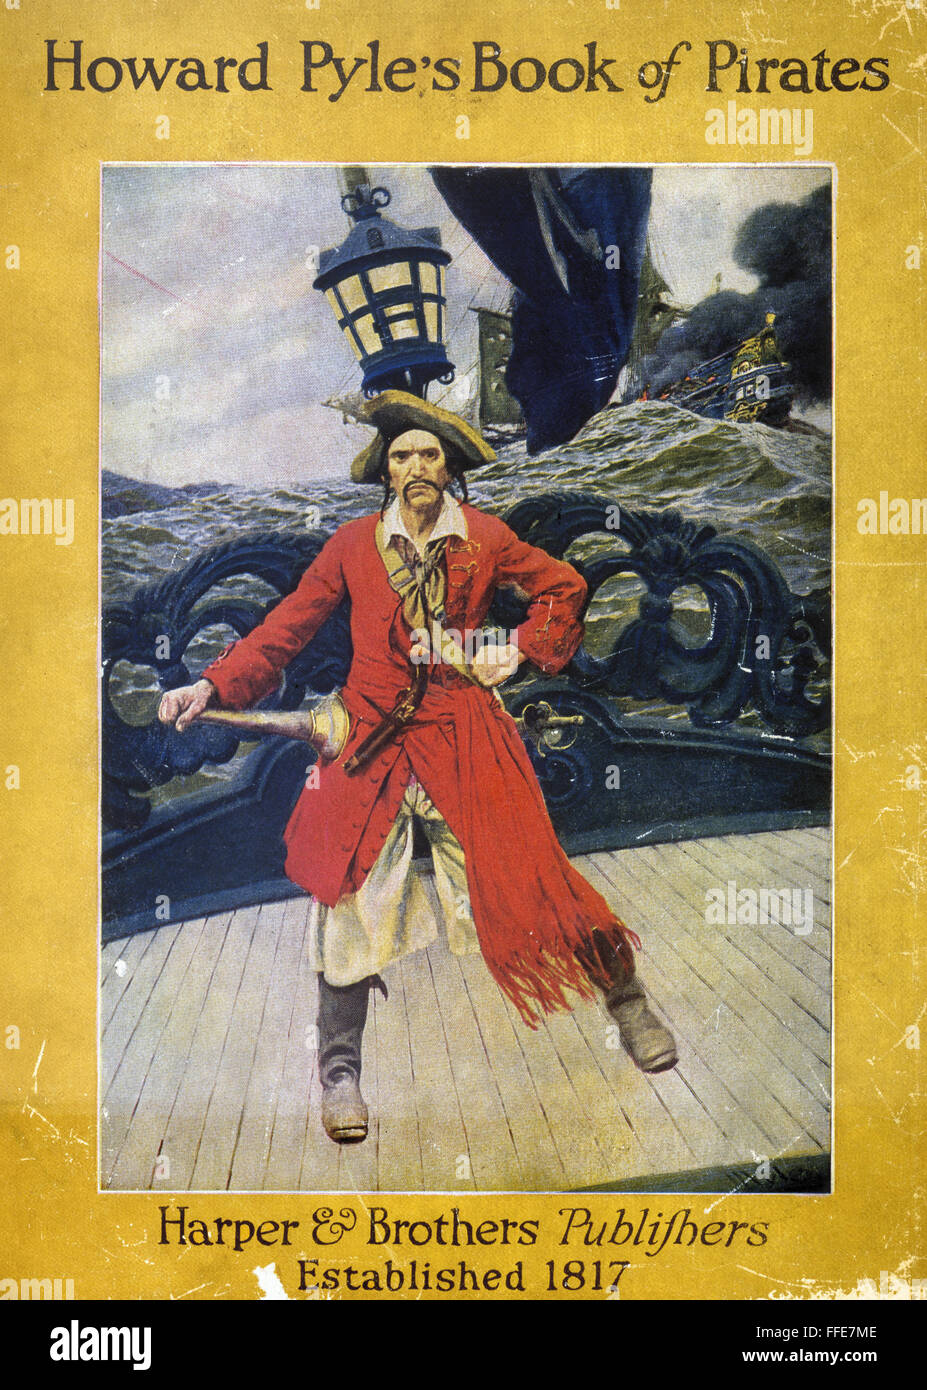 howard pyle pirate ncover of u0027howard pyle u0027s book of pirates